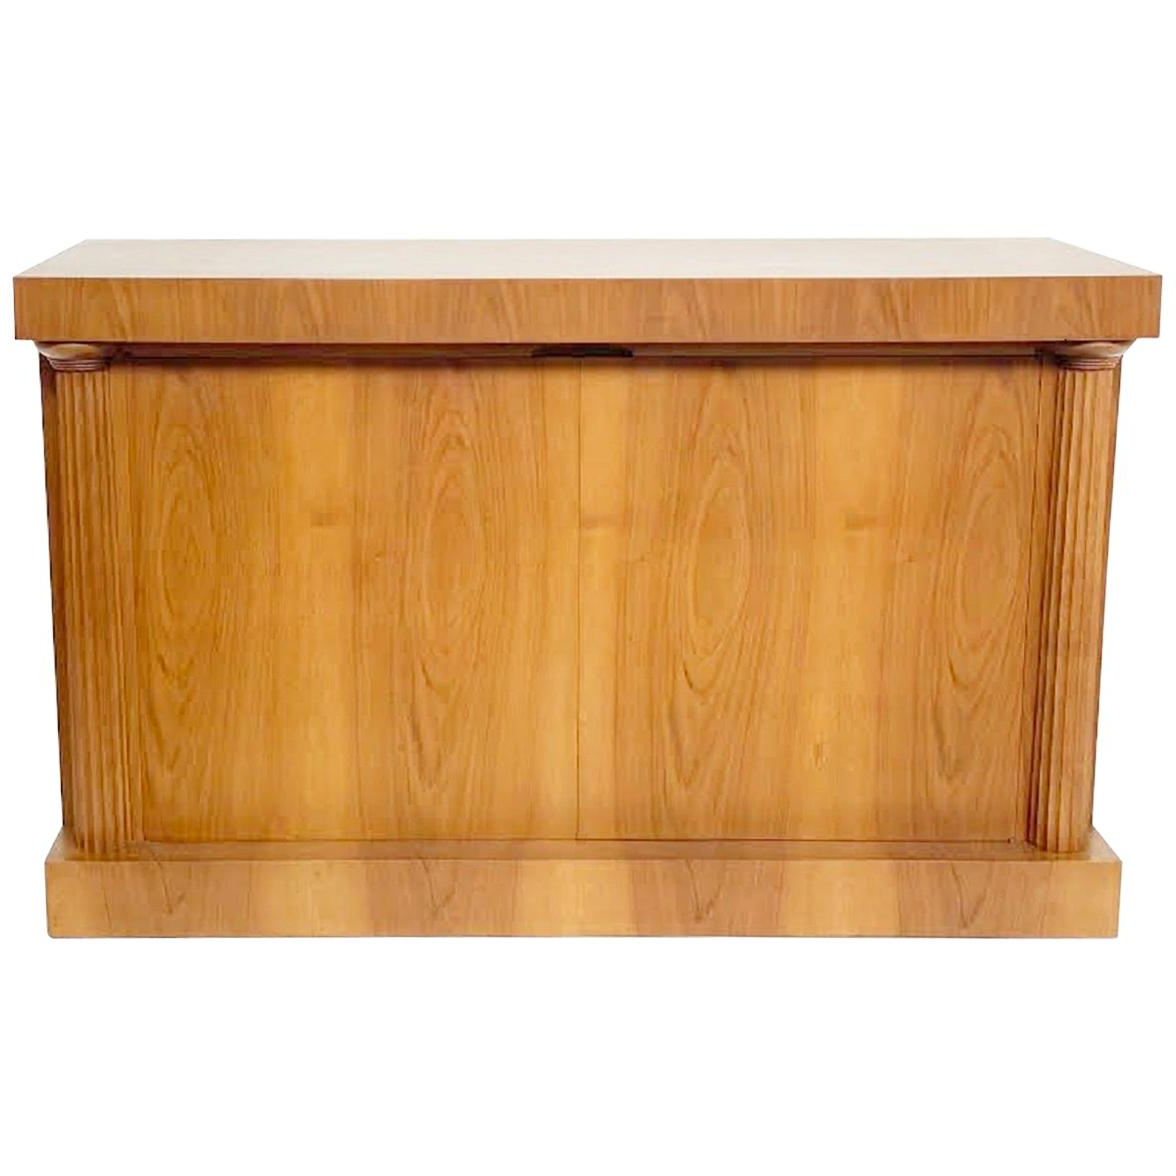 Watteeu Case Pieces And Storage Cabinets – 1Stdibs With Regard To 2019 Weinberger Sideboards (Gallery 17 of 20)